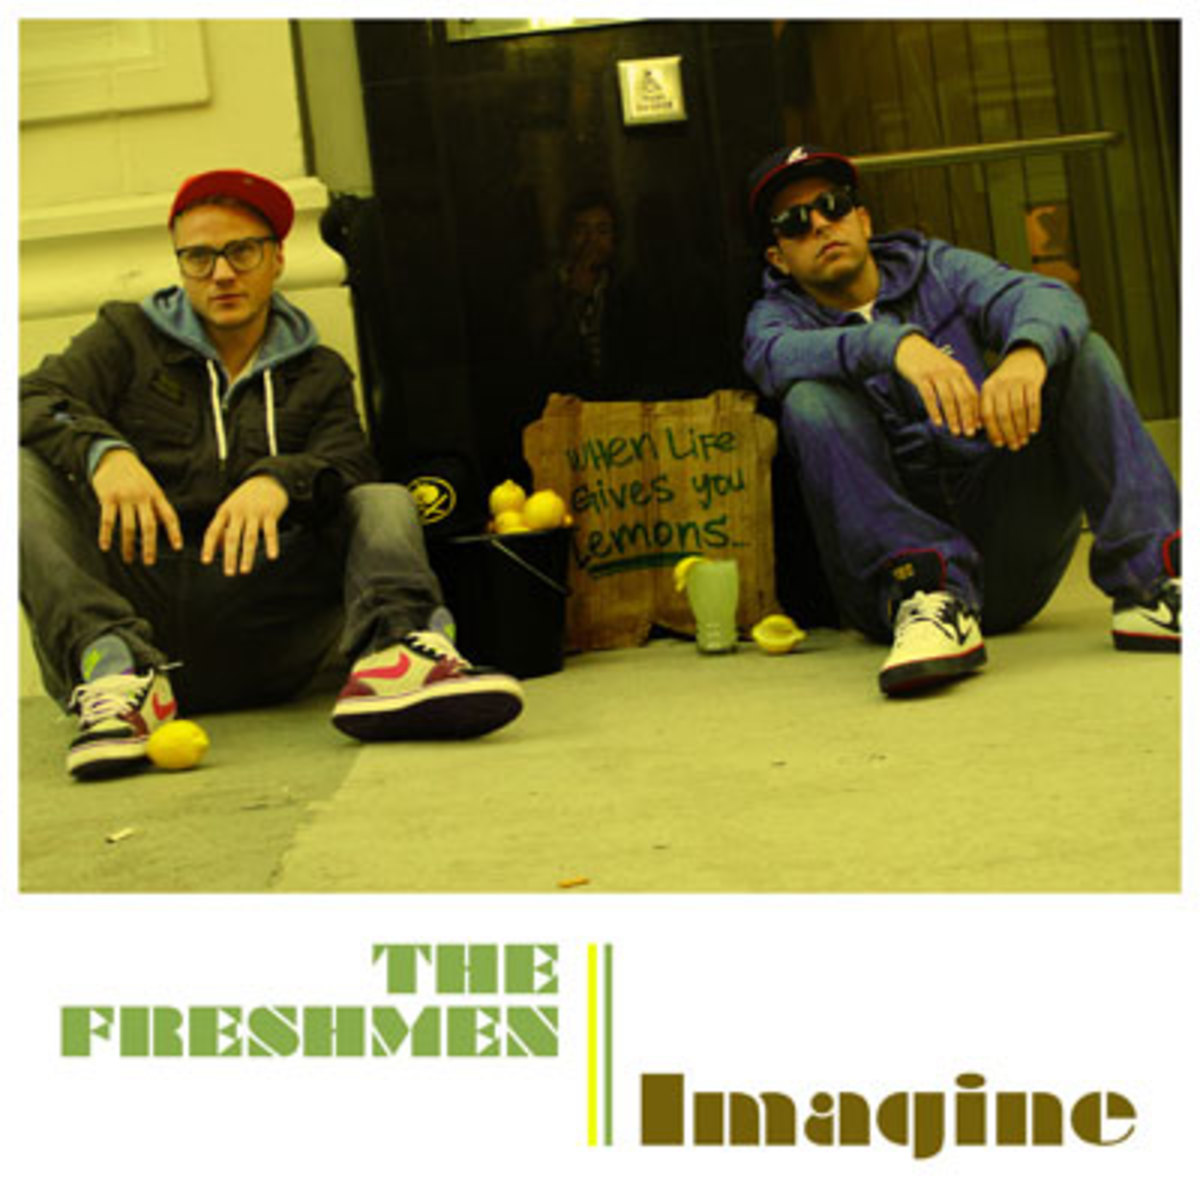 thefreshmen-imagine.jpg